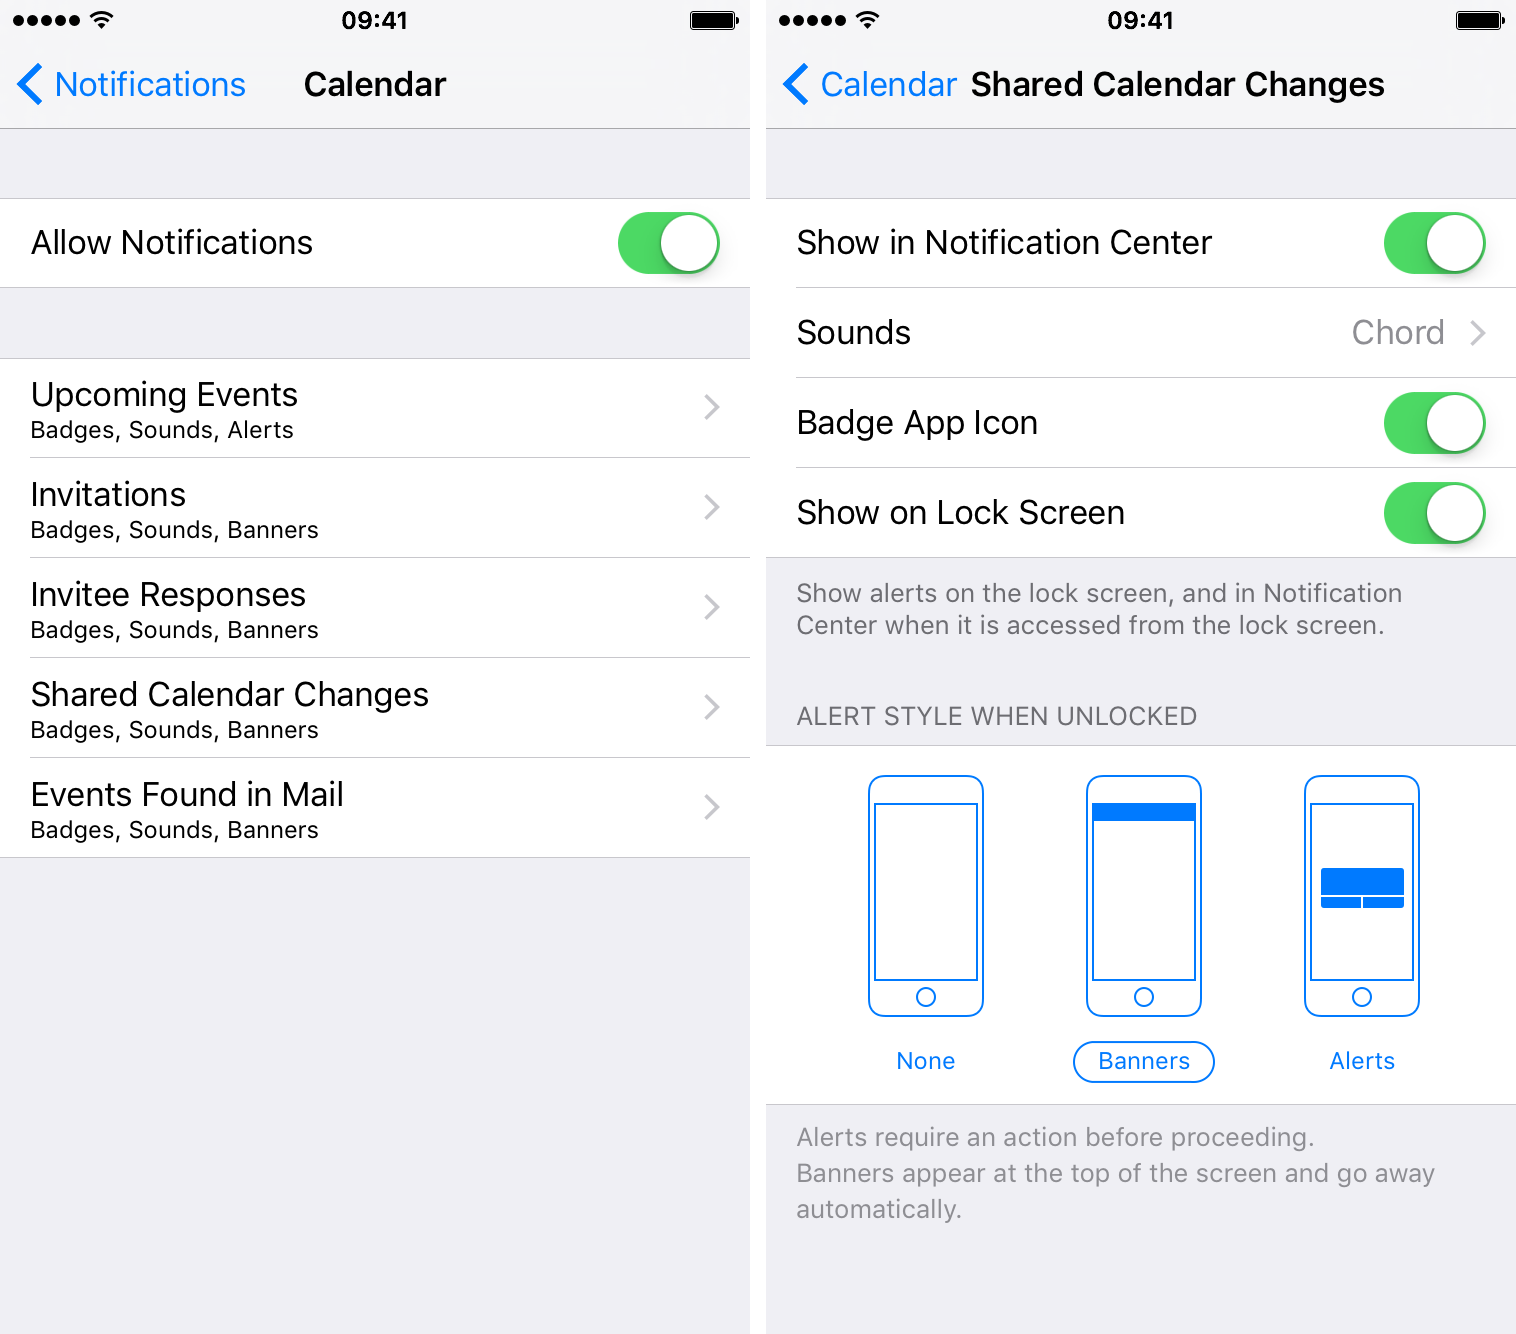 Adjust notifications for shared calendars